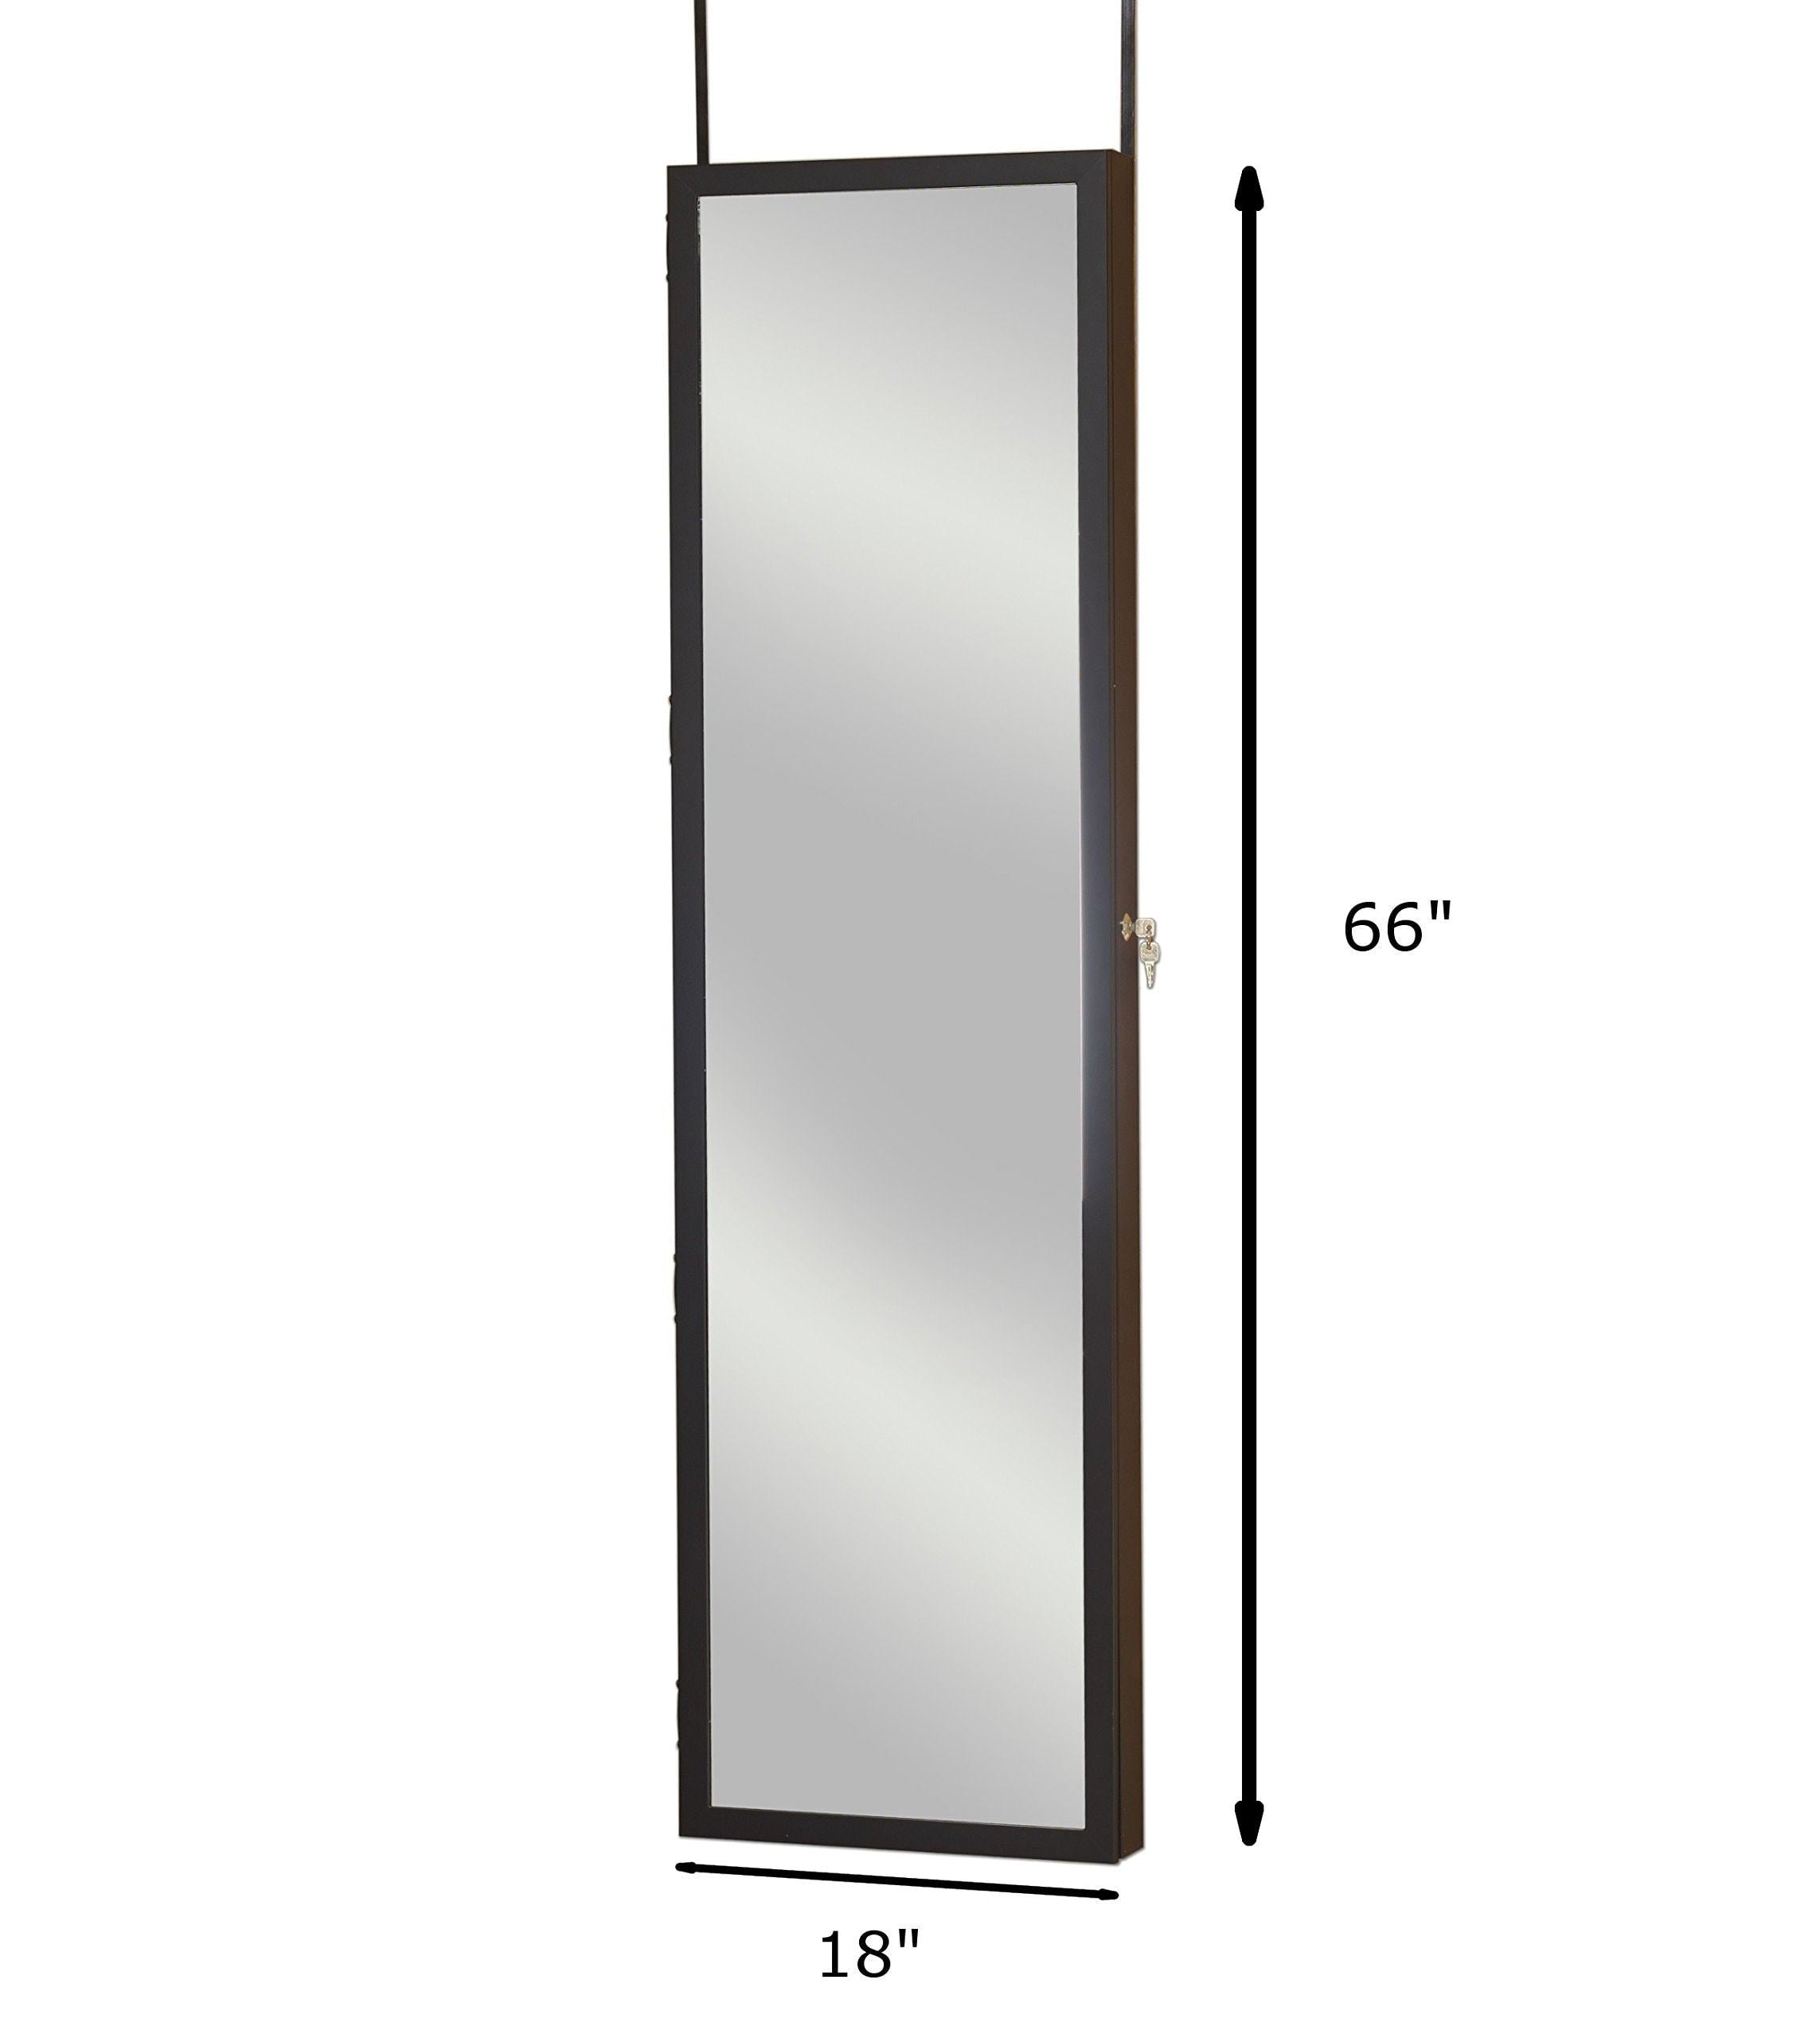 Shop here plaza astoria pa66bk wall mounted over the door super sized jewelry armoire storage cabinet with vanity full length dressing mirror black